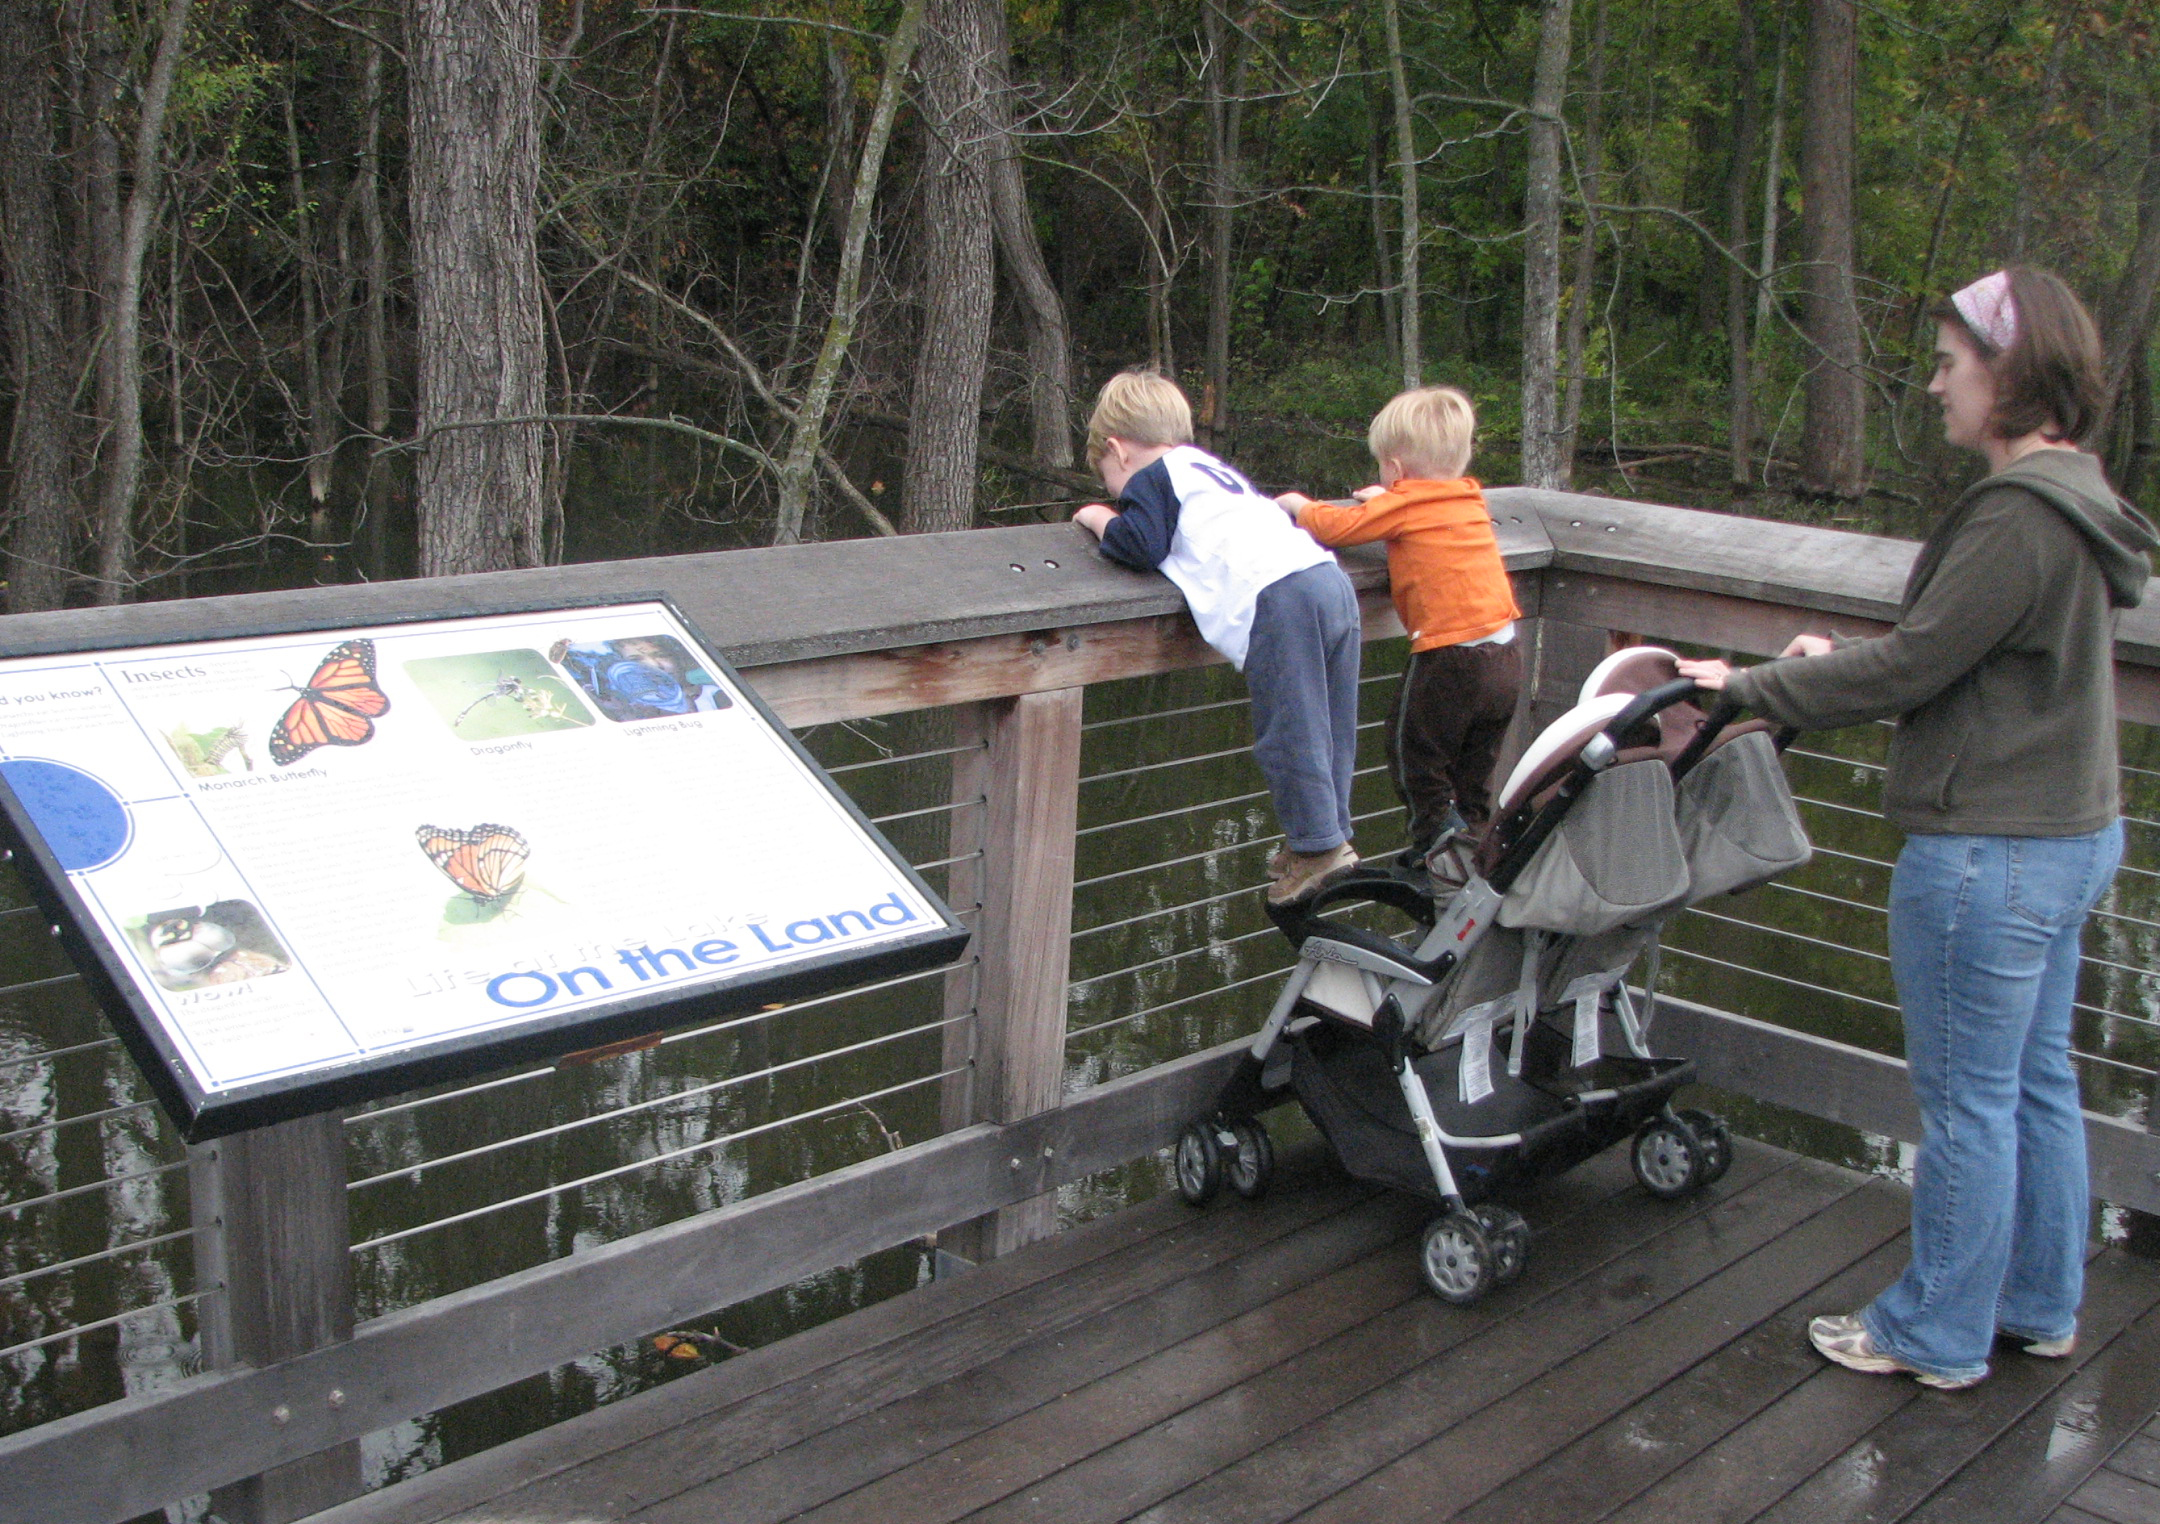 Lenexa Interpretive Sign Master Plan